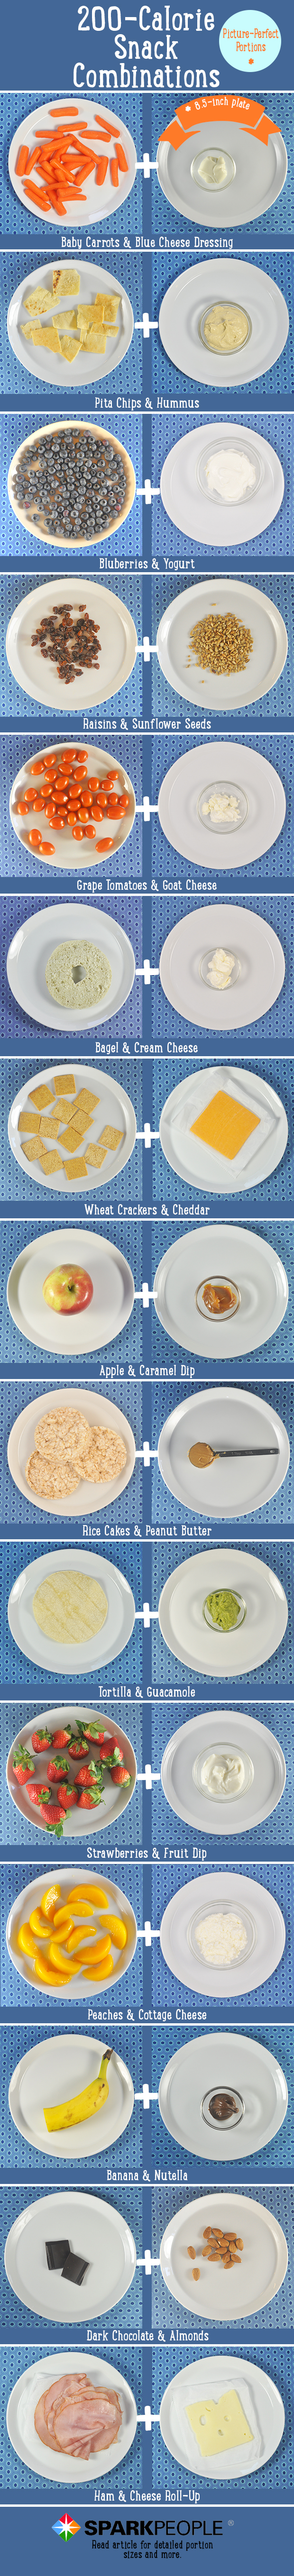 Tips: Eating healthy Snackcombos